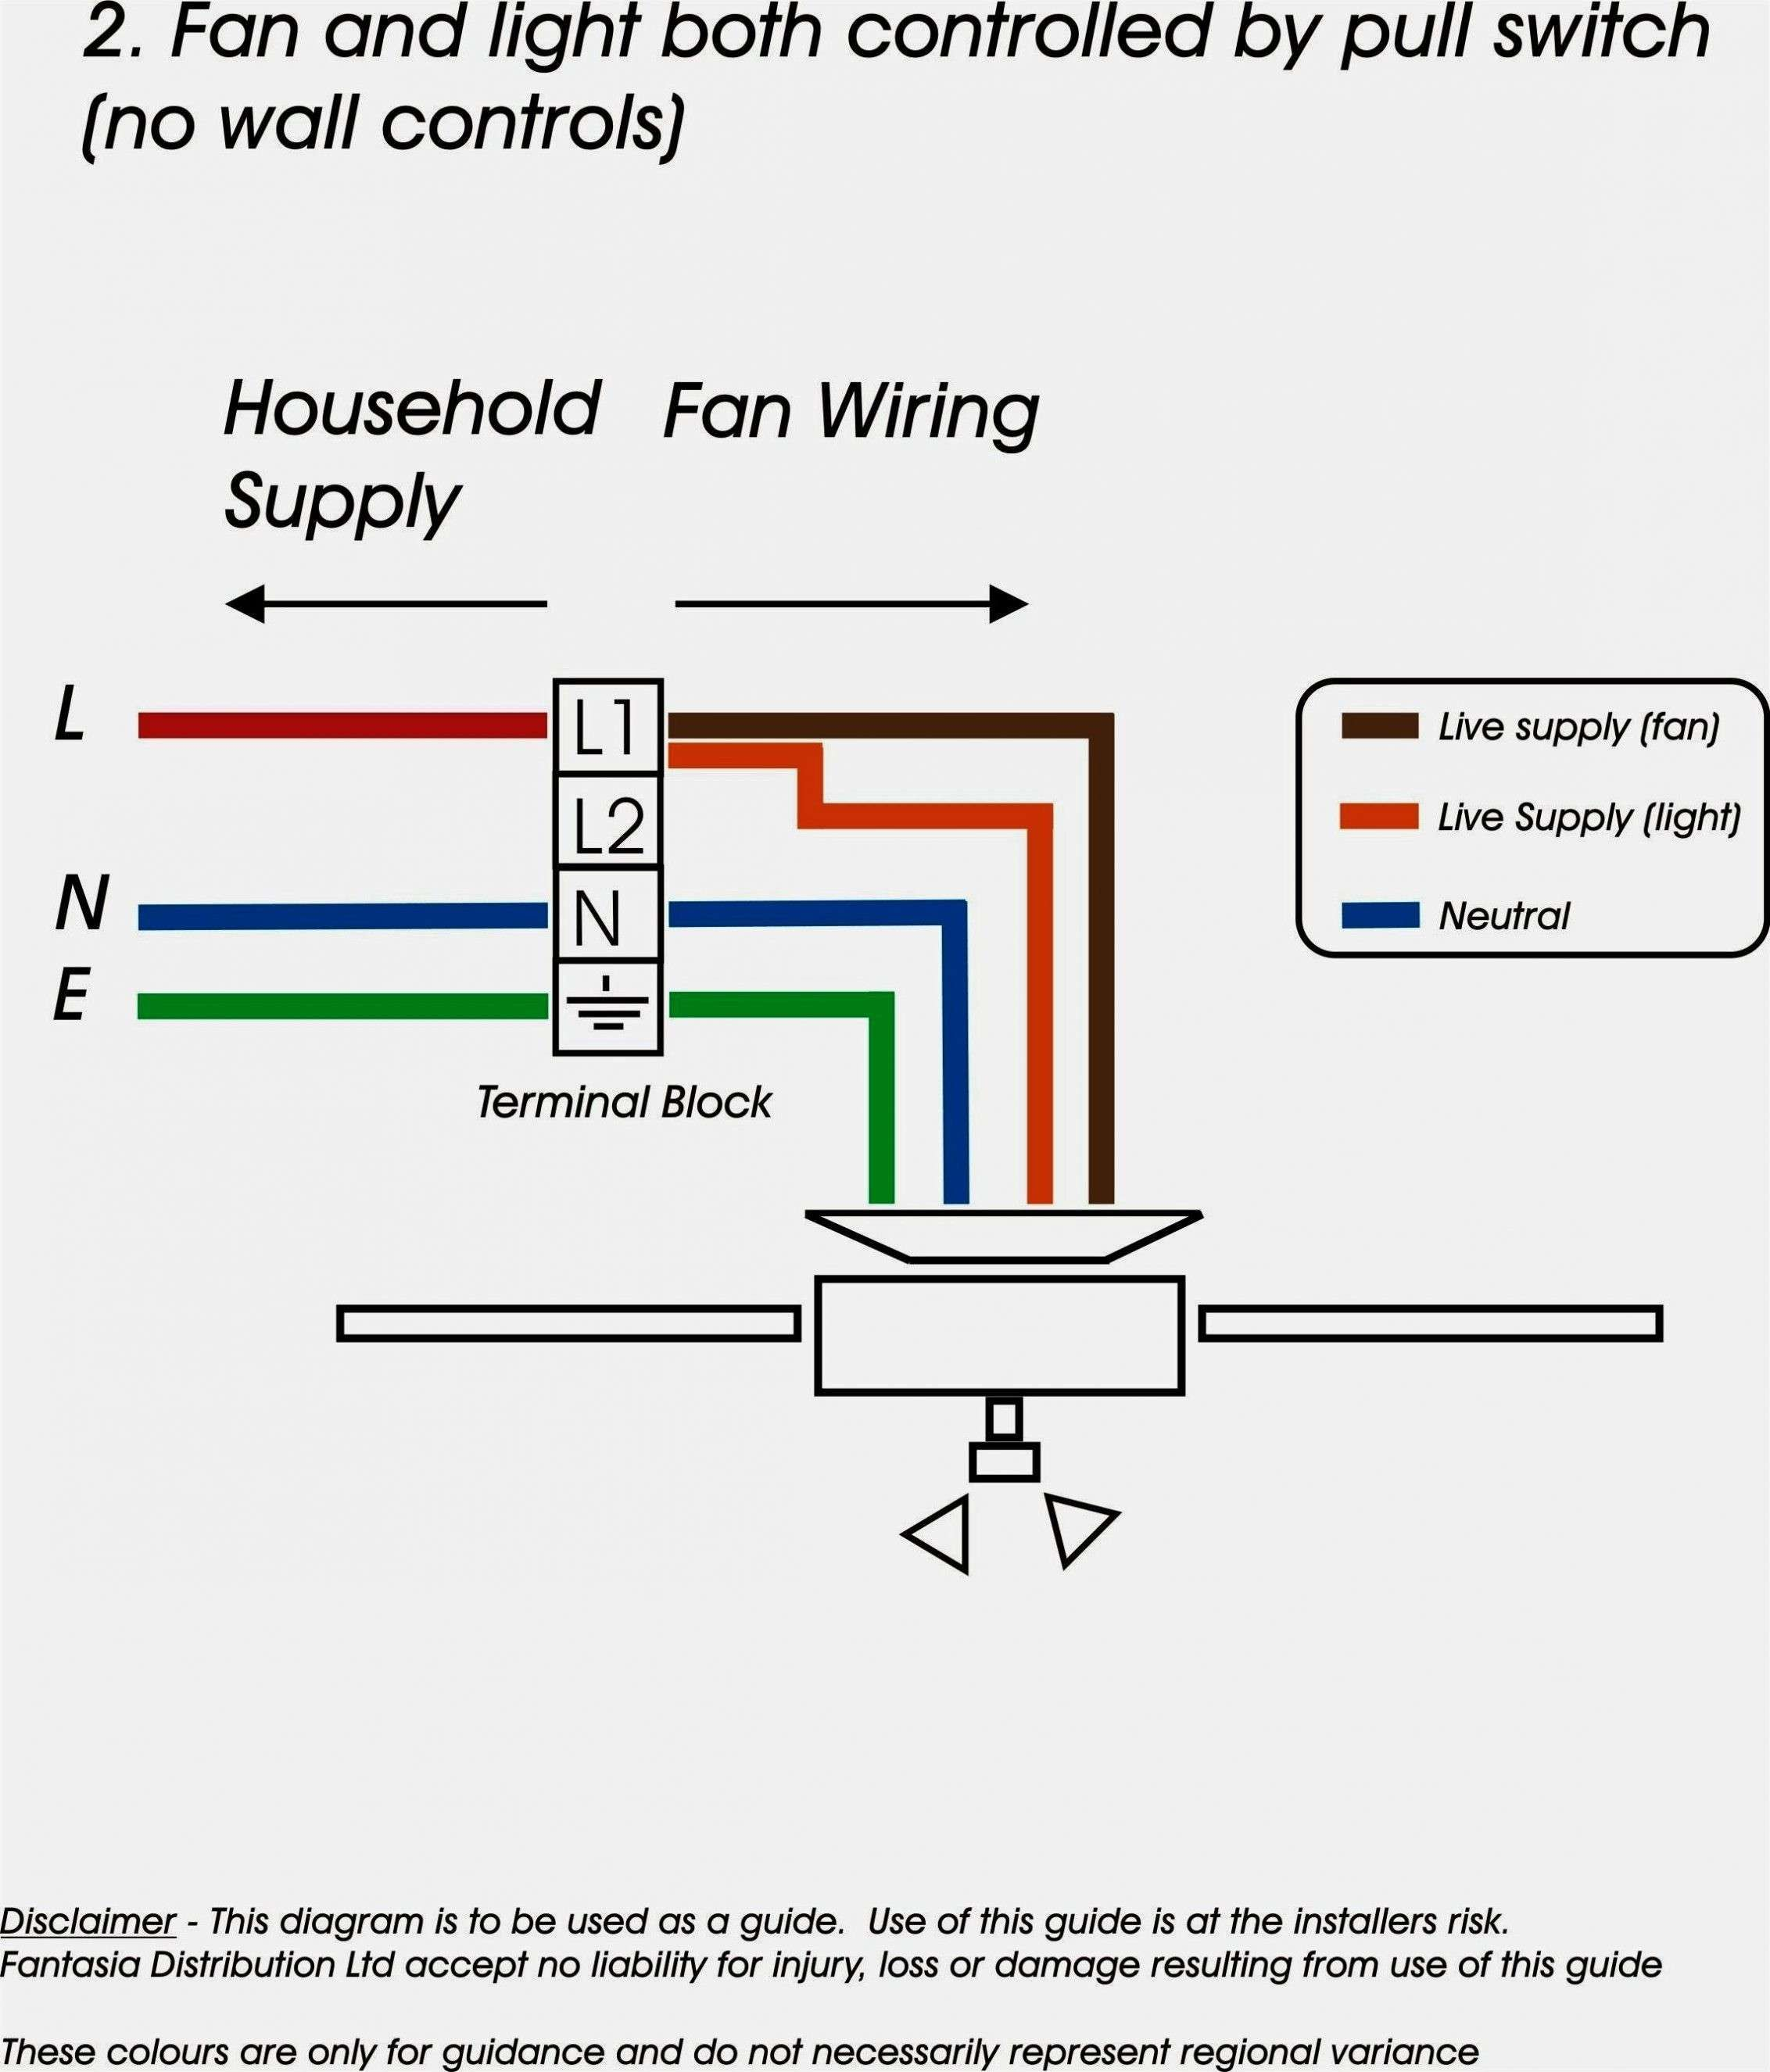 Wiring Diagram 3 Way Switch New Hunter Ceiling Fan 3 Way Switch Wiring Diagram Sample Ceiling Fan Switch Ceiling Fan Wiring Light Switch Wiring